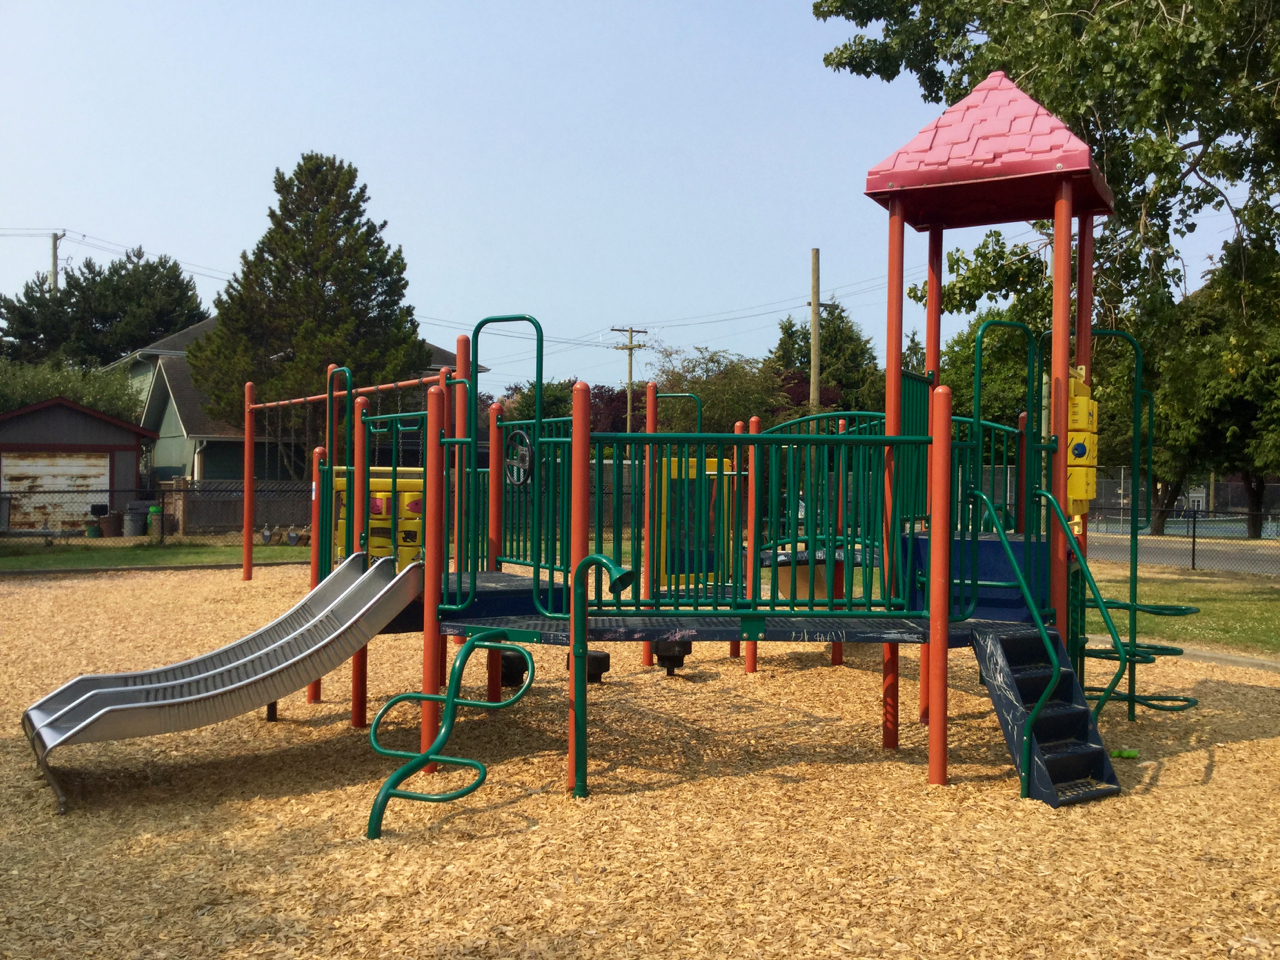 Toddler Park is perfect for the younger set, and enclosed with a fence for added safety.